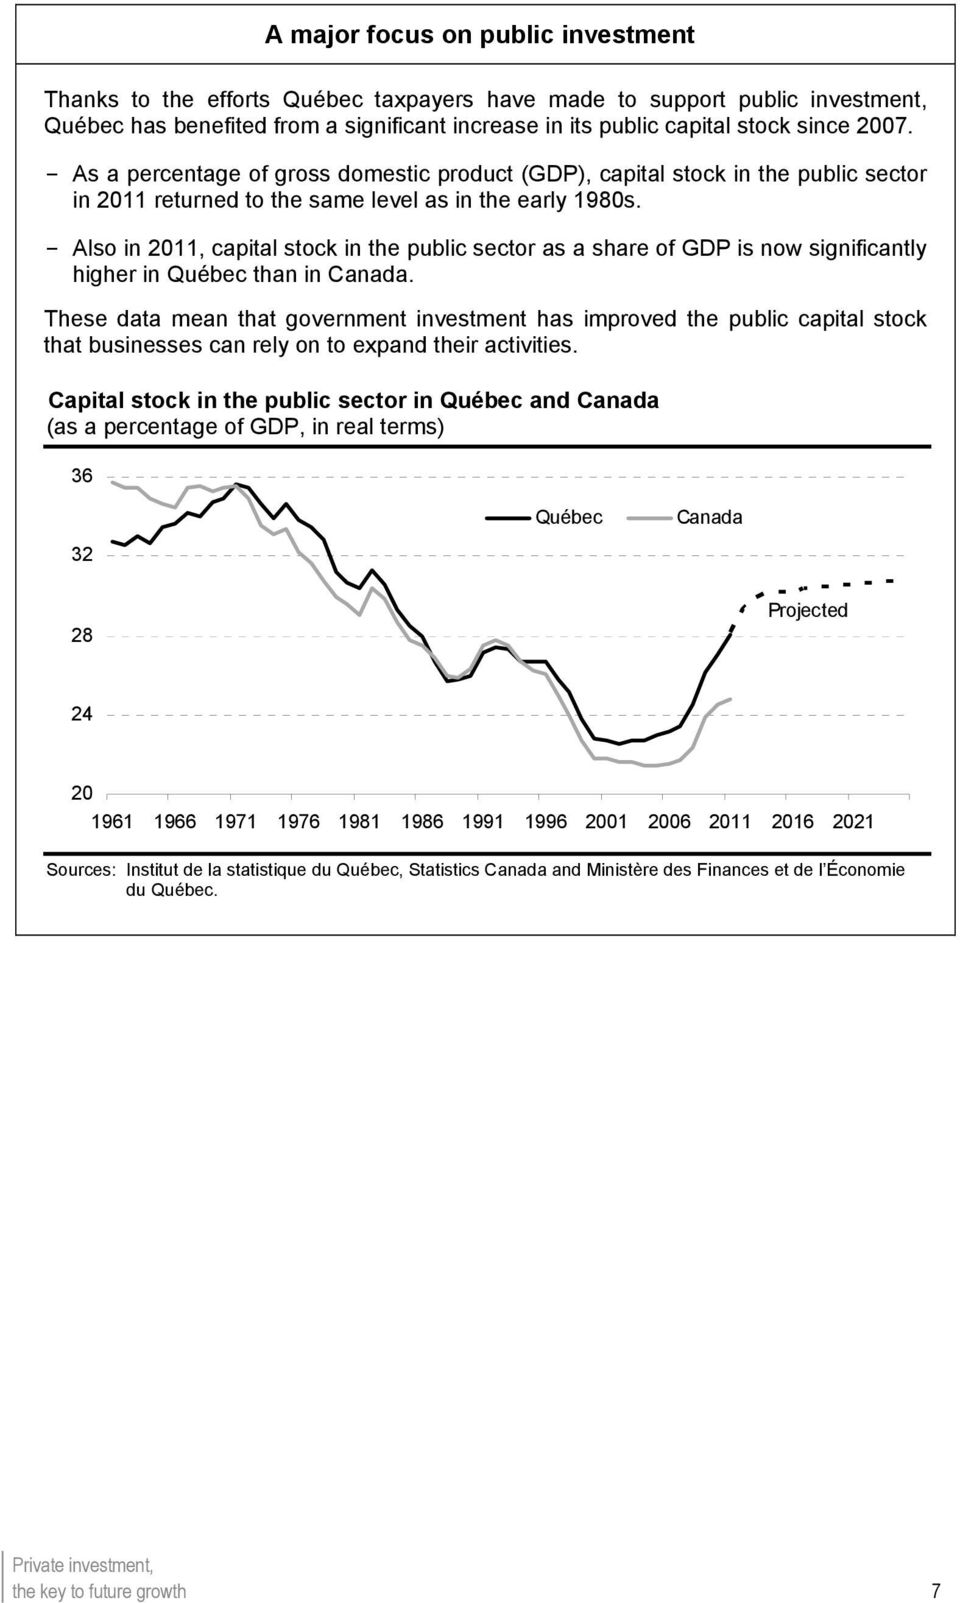 Also in 2011, capital stock in the public sector as a share of GDP is now significantly higher in Québec than in Canada.